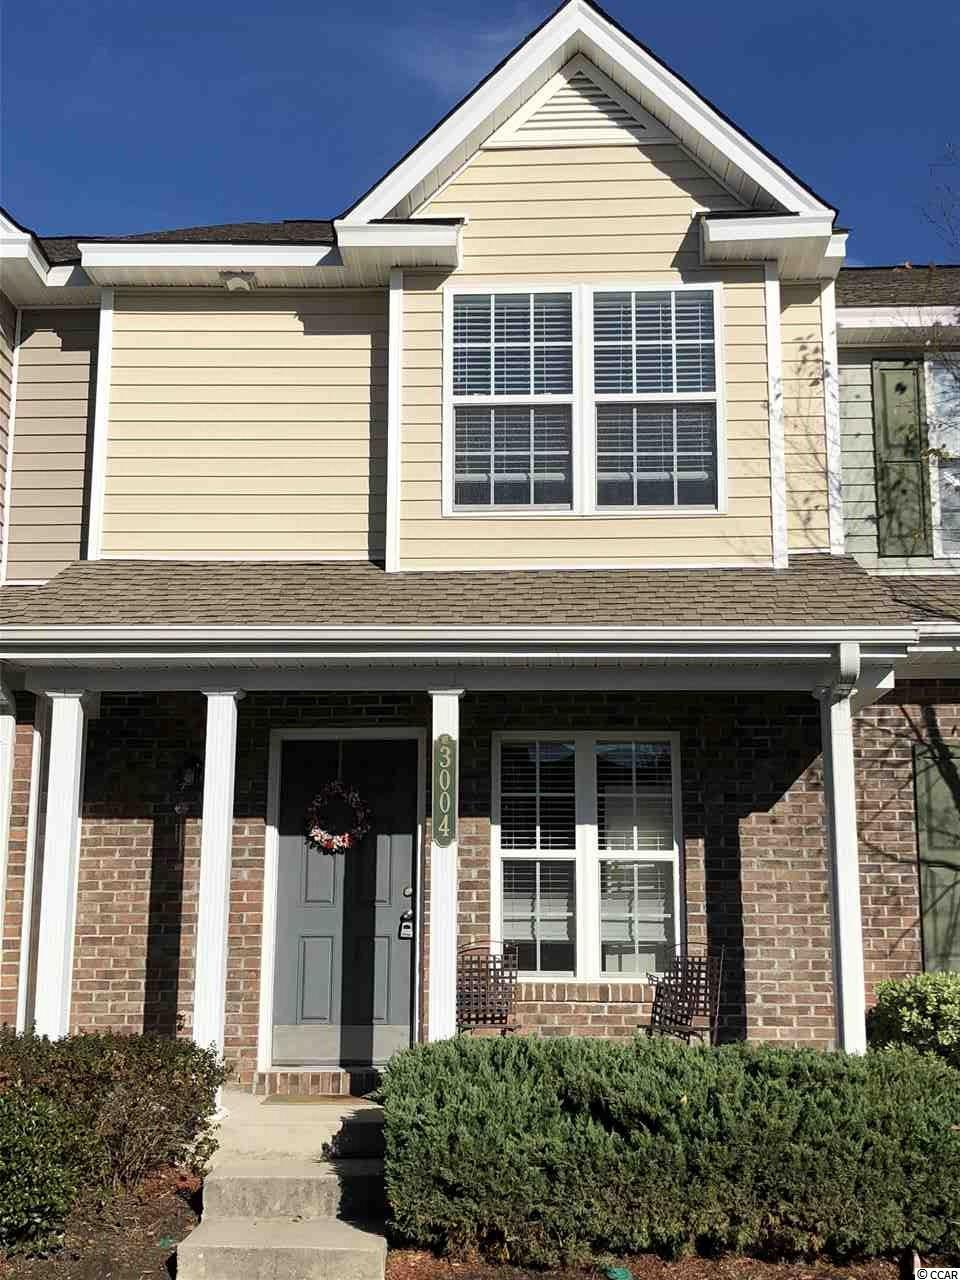 This is a beautiful, well maintained two bedroom, two and half bath townhouse. There is a half bath, kitchen, dining area and living room on the first floor with an open floor plan. The second floor offers two bedrooms with two full baths, washer and dryer. This home also features an inviting front porch and a private screened in back porch. Bring you clothes and move right in !!!! This home comes completely furnished right down to kitchen dishes, pots and pans, silverware, bed linens, towels and wash clothes. Two TV's are also included. A gas grill and porch furniture. Turn the key and you are home. This home is Located in the desirable community of Midtown Village. This is a maintenance free living community. The HOA includes : Your insurance on the unit, water, garbage and sewage. Basic cable. All lawn care, irrigation system. The swimming pool and club house.